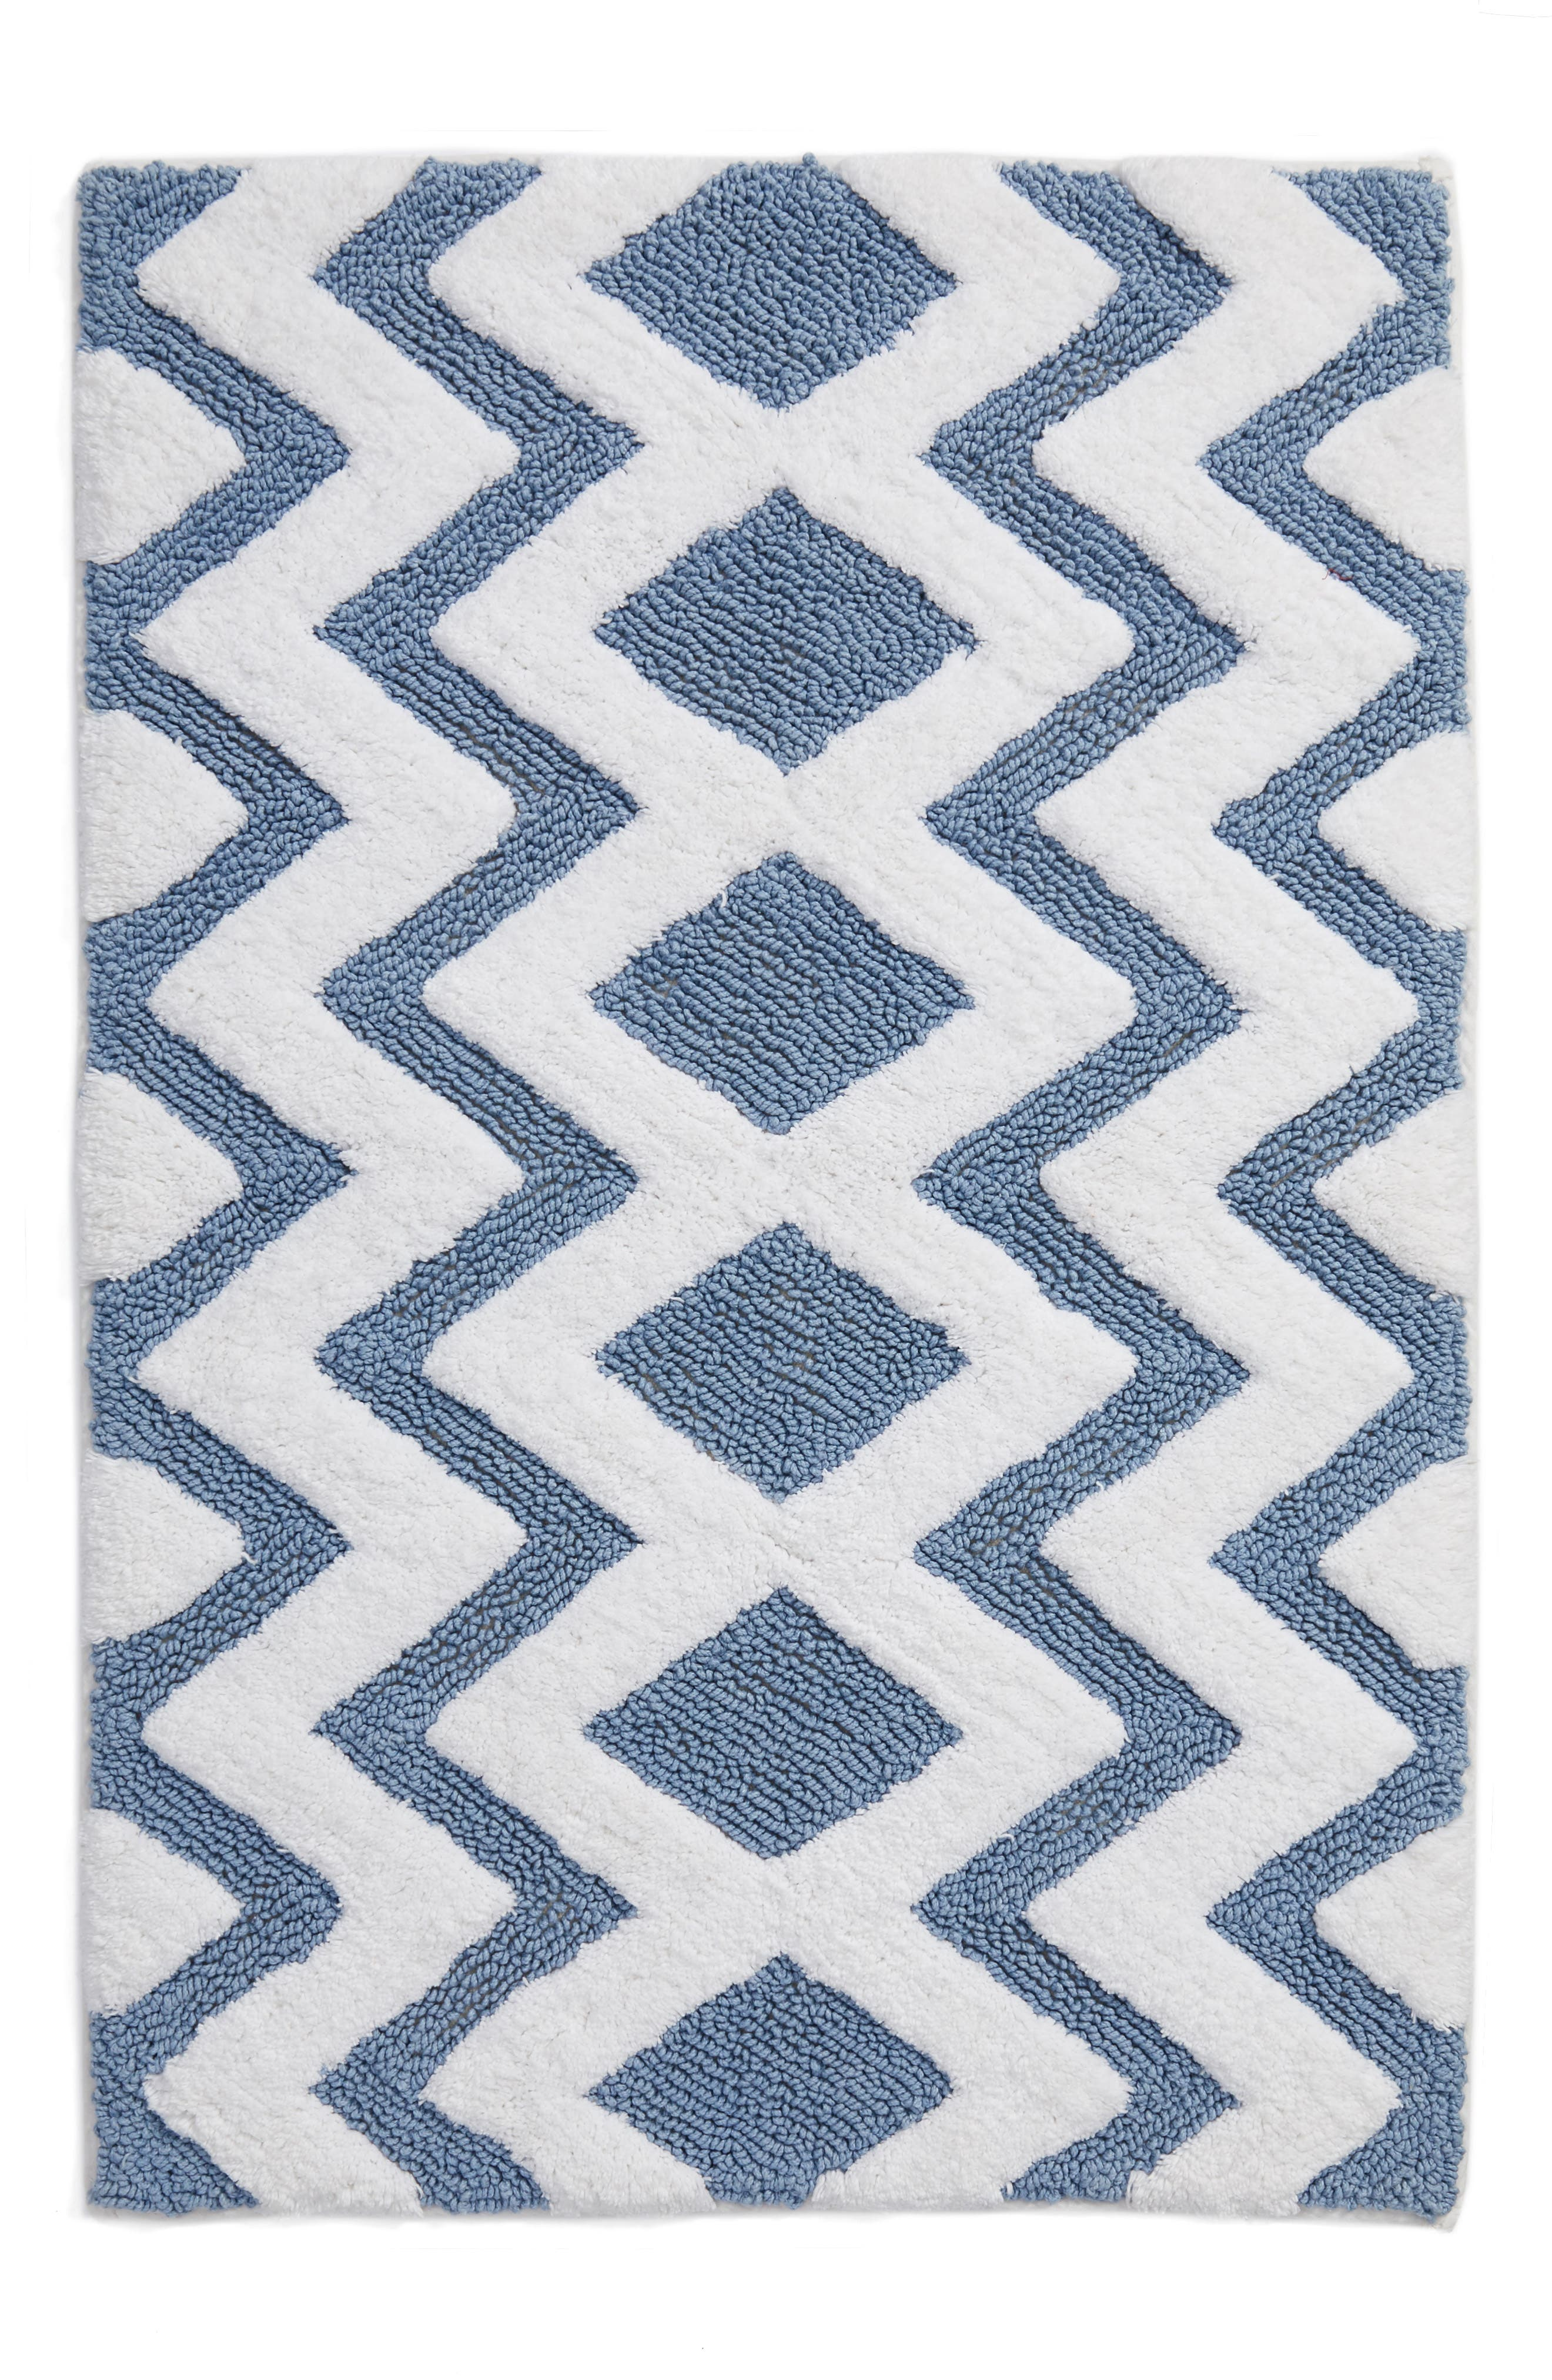 Nordstrom at Home Geo Pattern Rug